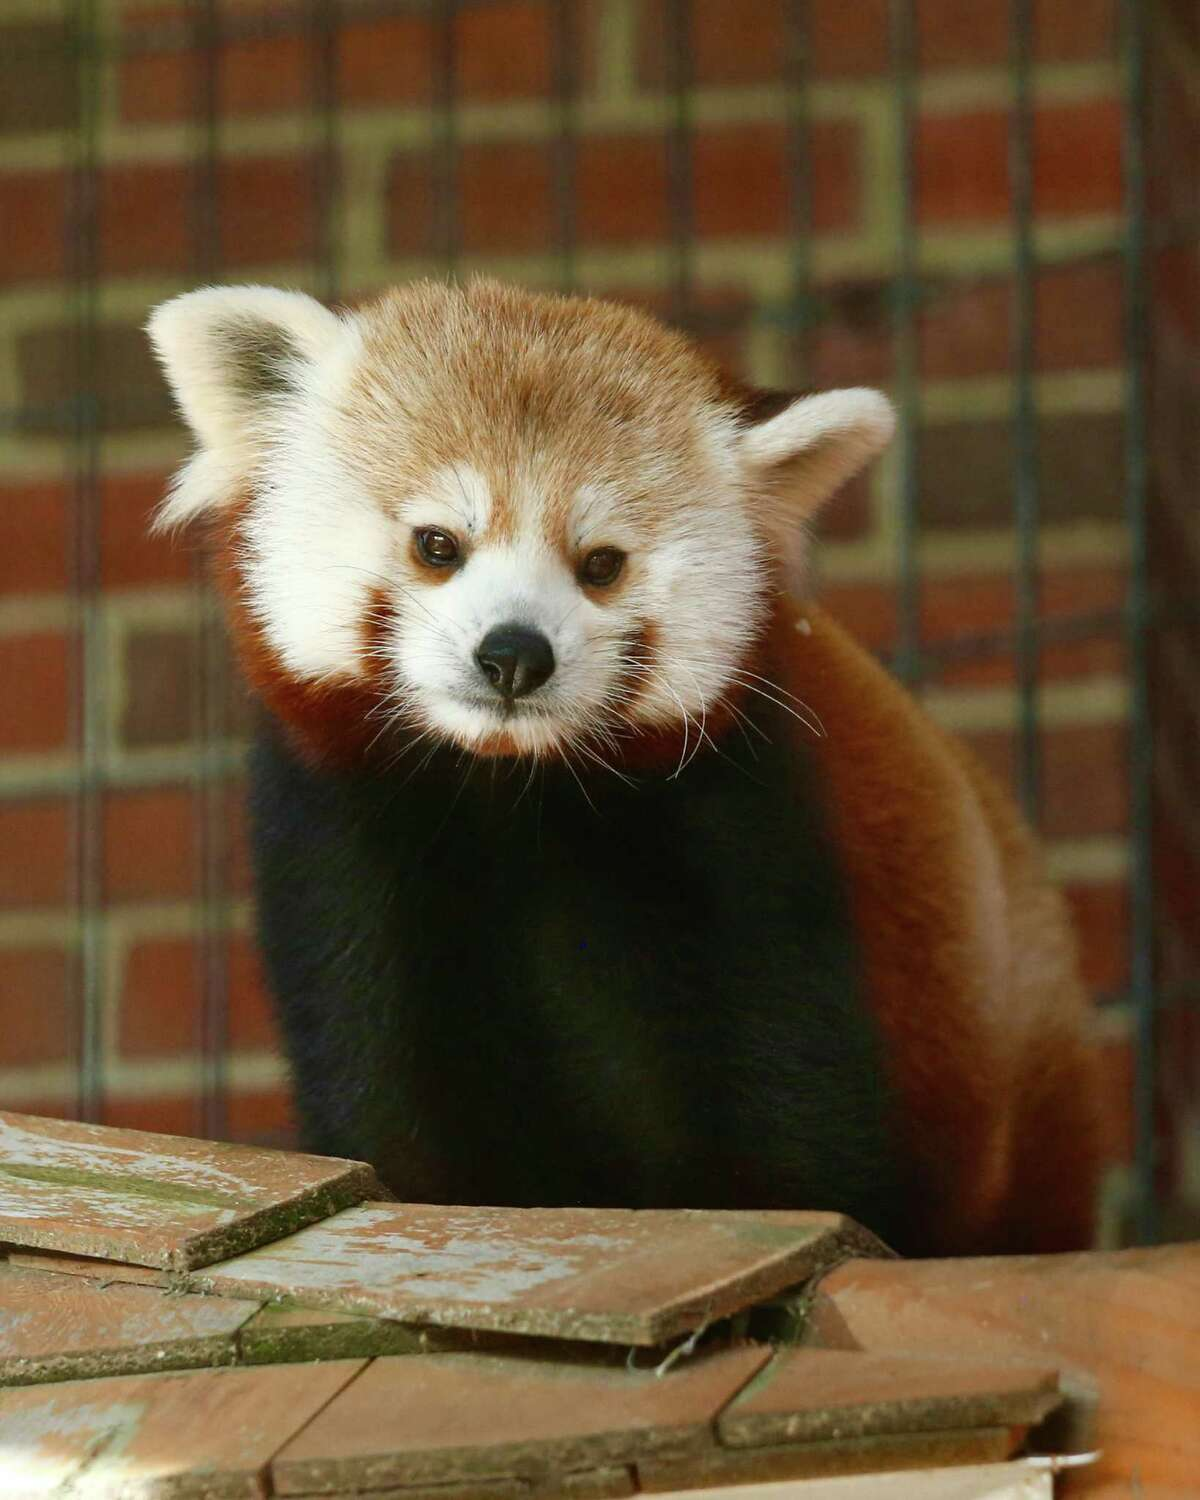 Rochan, a 16-month old Red panda, has moved to Bridgeport while his home at the Franklin Park Zoo in Boston is being renovated.Click through to see some of the other cute and exotic animals that have called the zoo home.